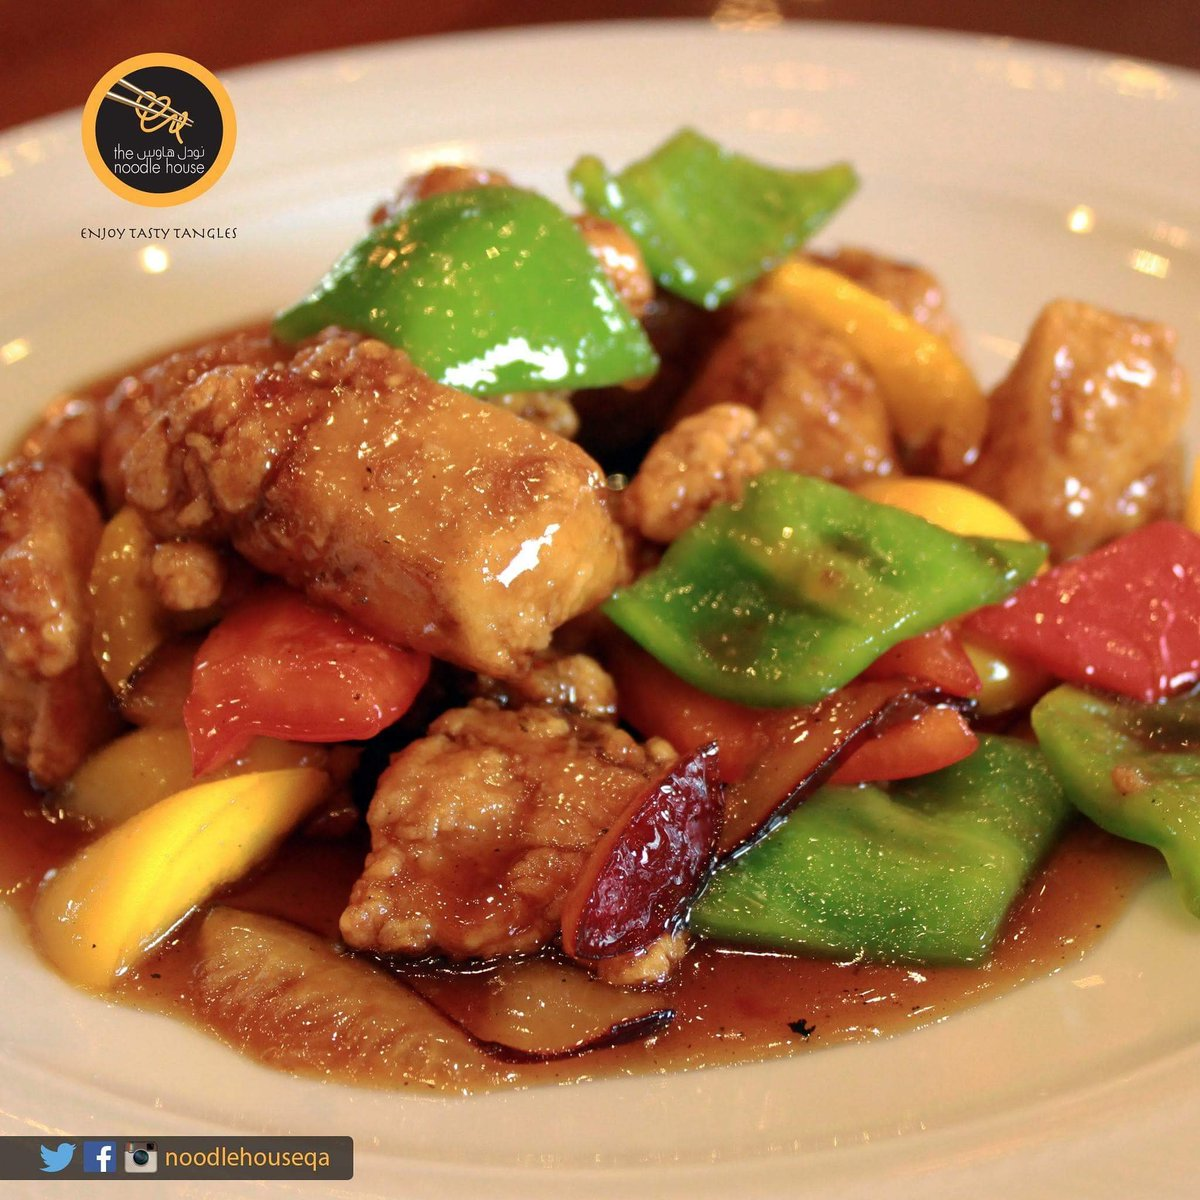 You can never go wrong with Crispy Chicken & Plum ;) Try our secret sauce recipe from The Noodle House https://t.co/CaJxuMguMo